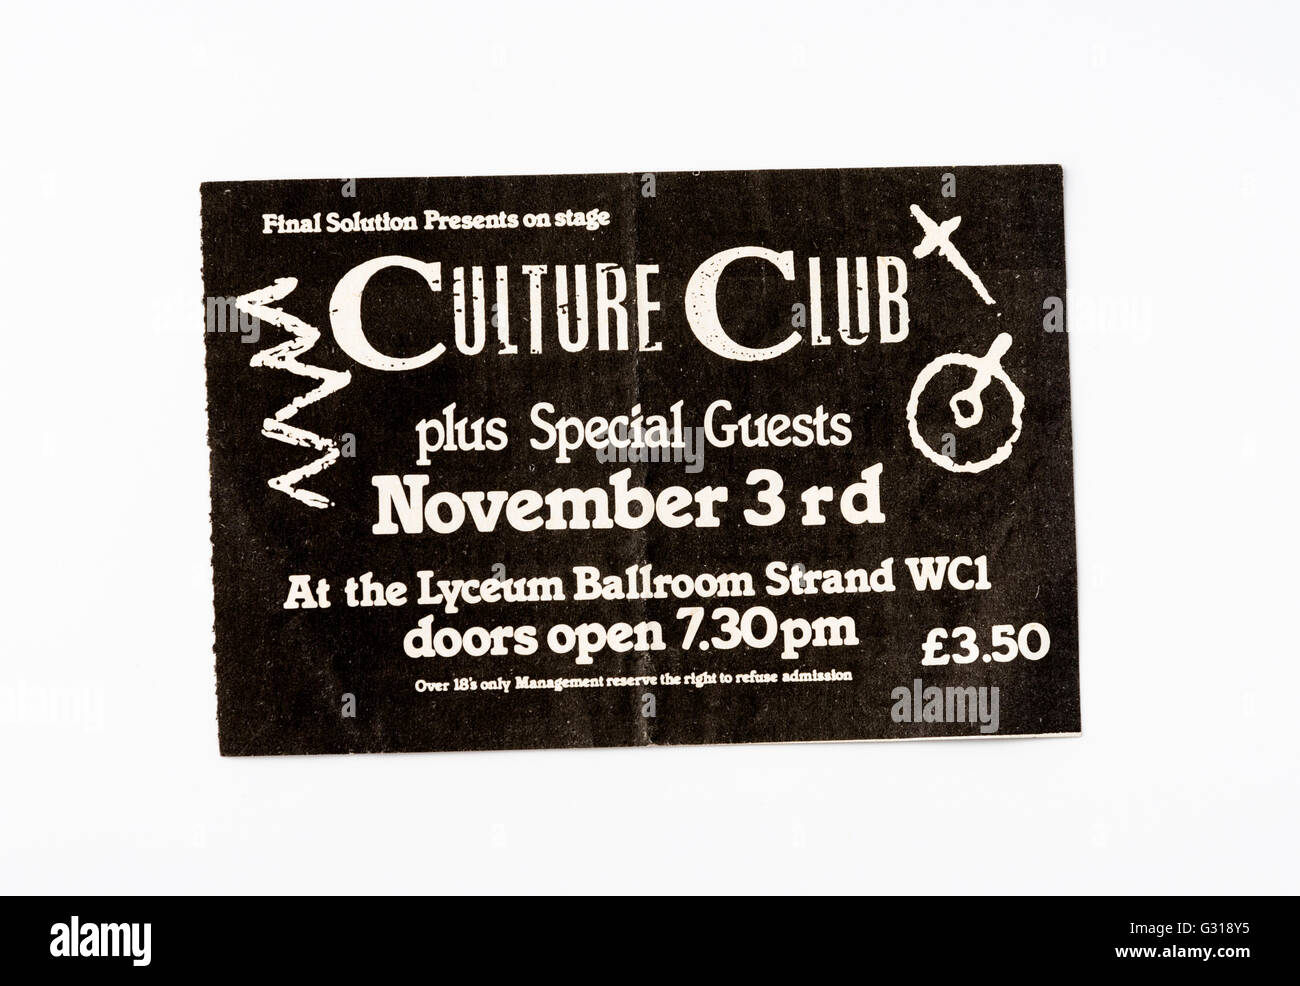 Culture Club ticket for a concert at the Lyceum Ballroom - Stock Image